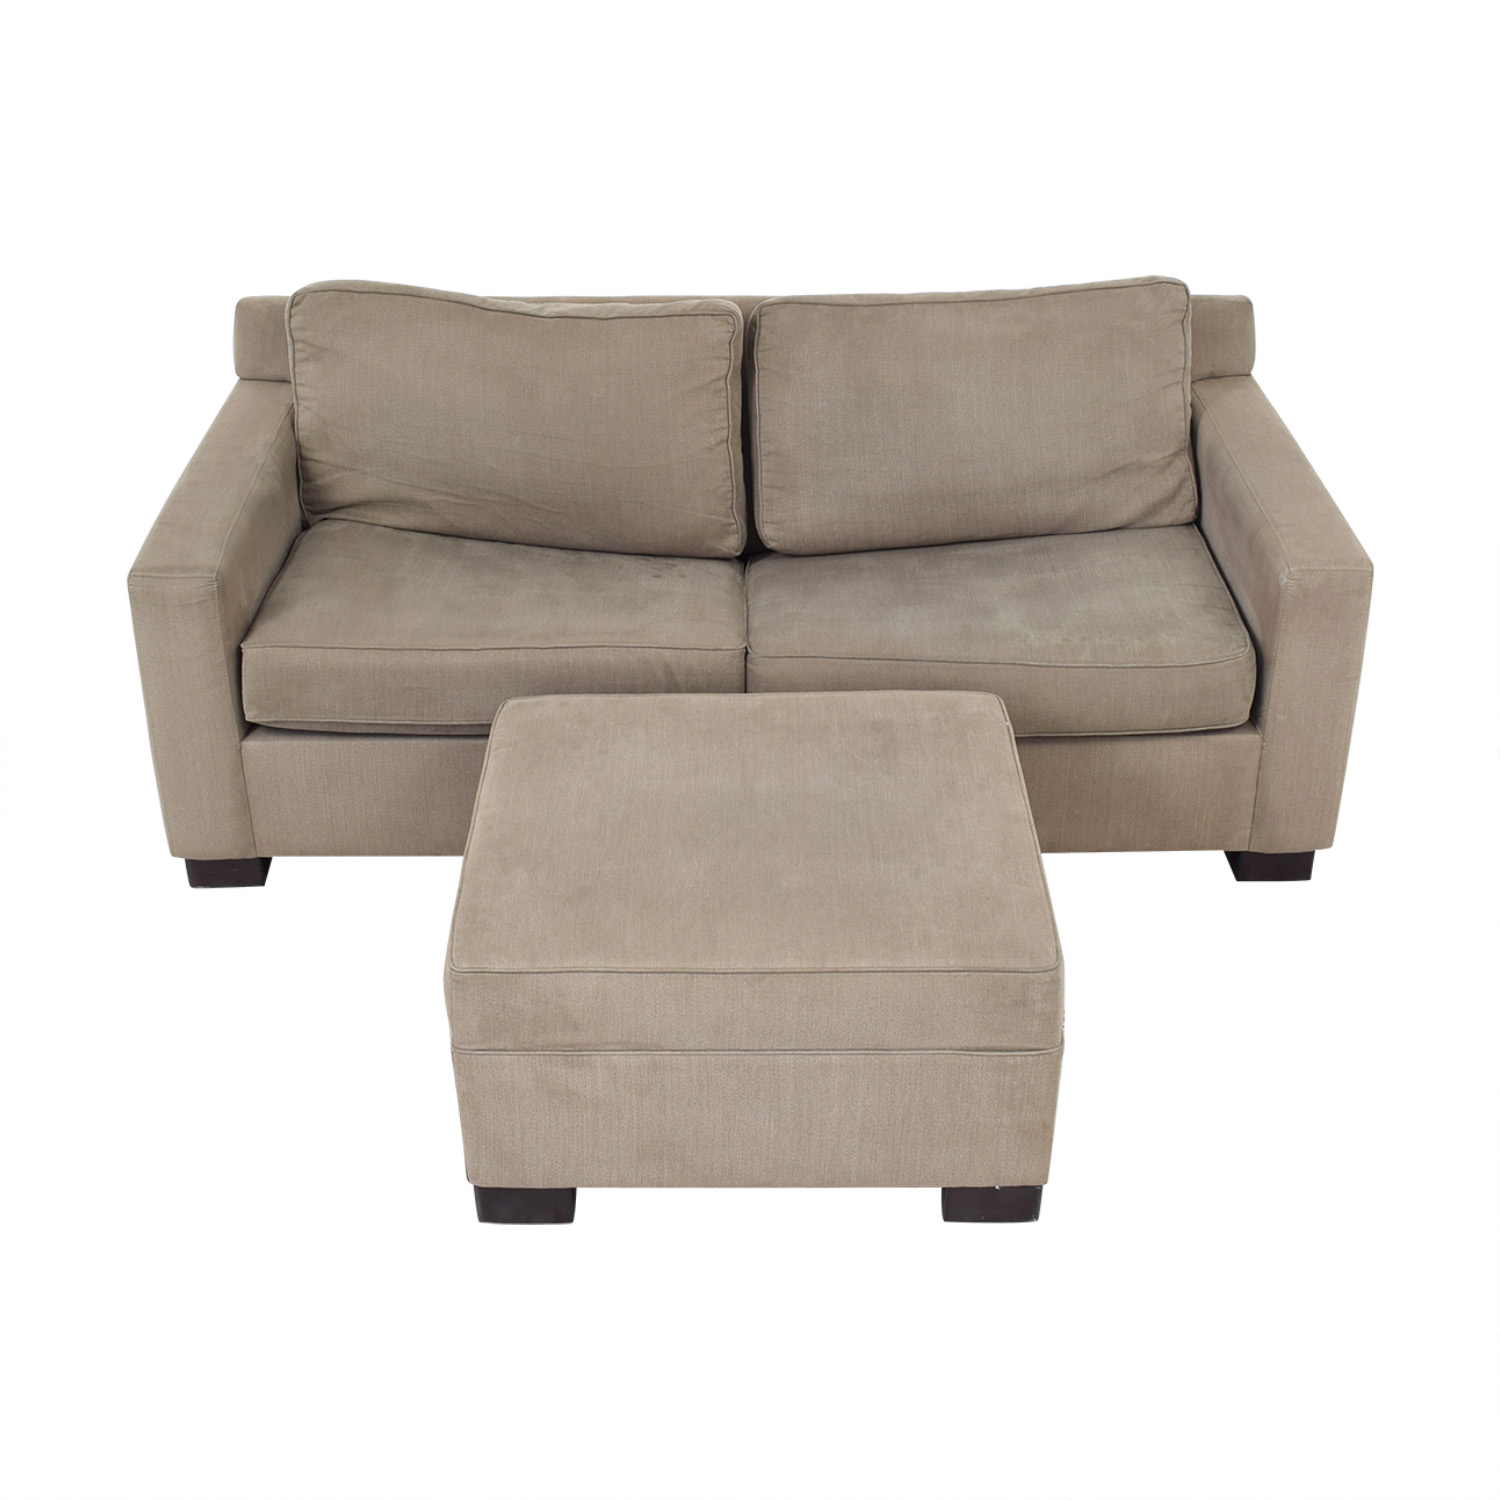 Urban Barn Urban Barn Apartment Sleeper Sofa & Ottoman Sofas